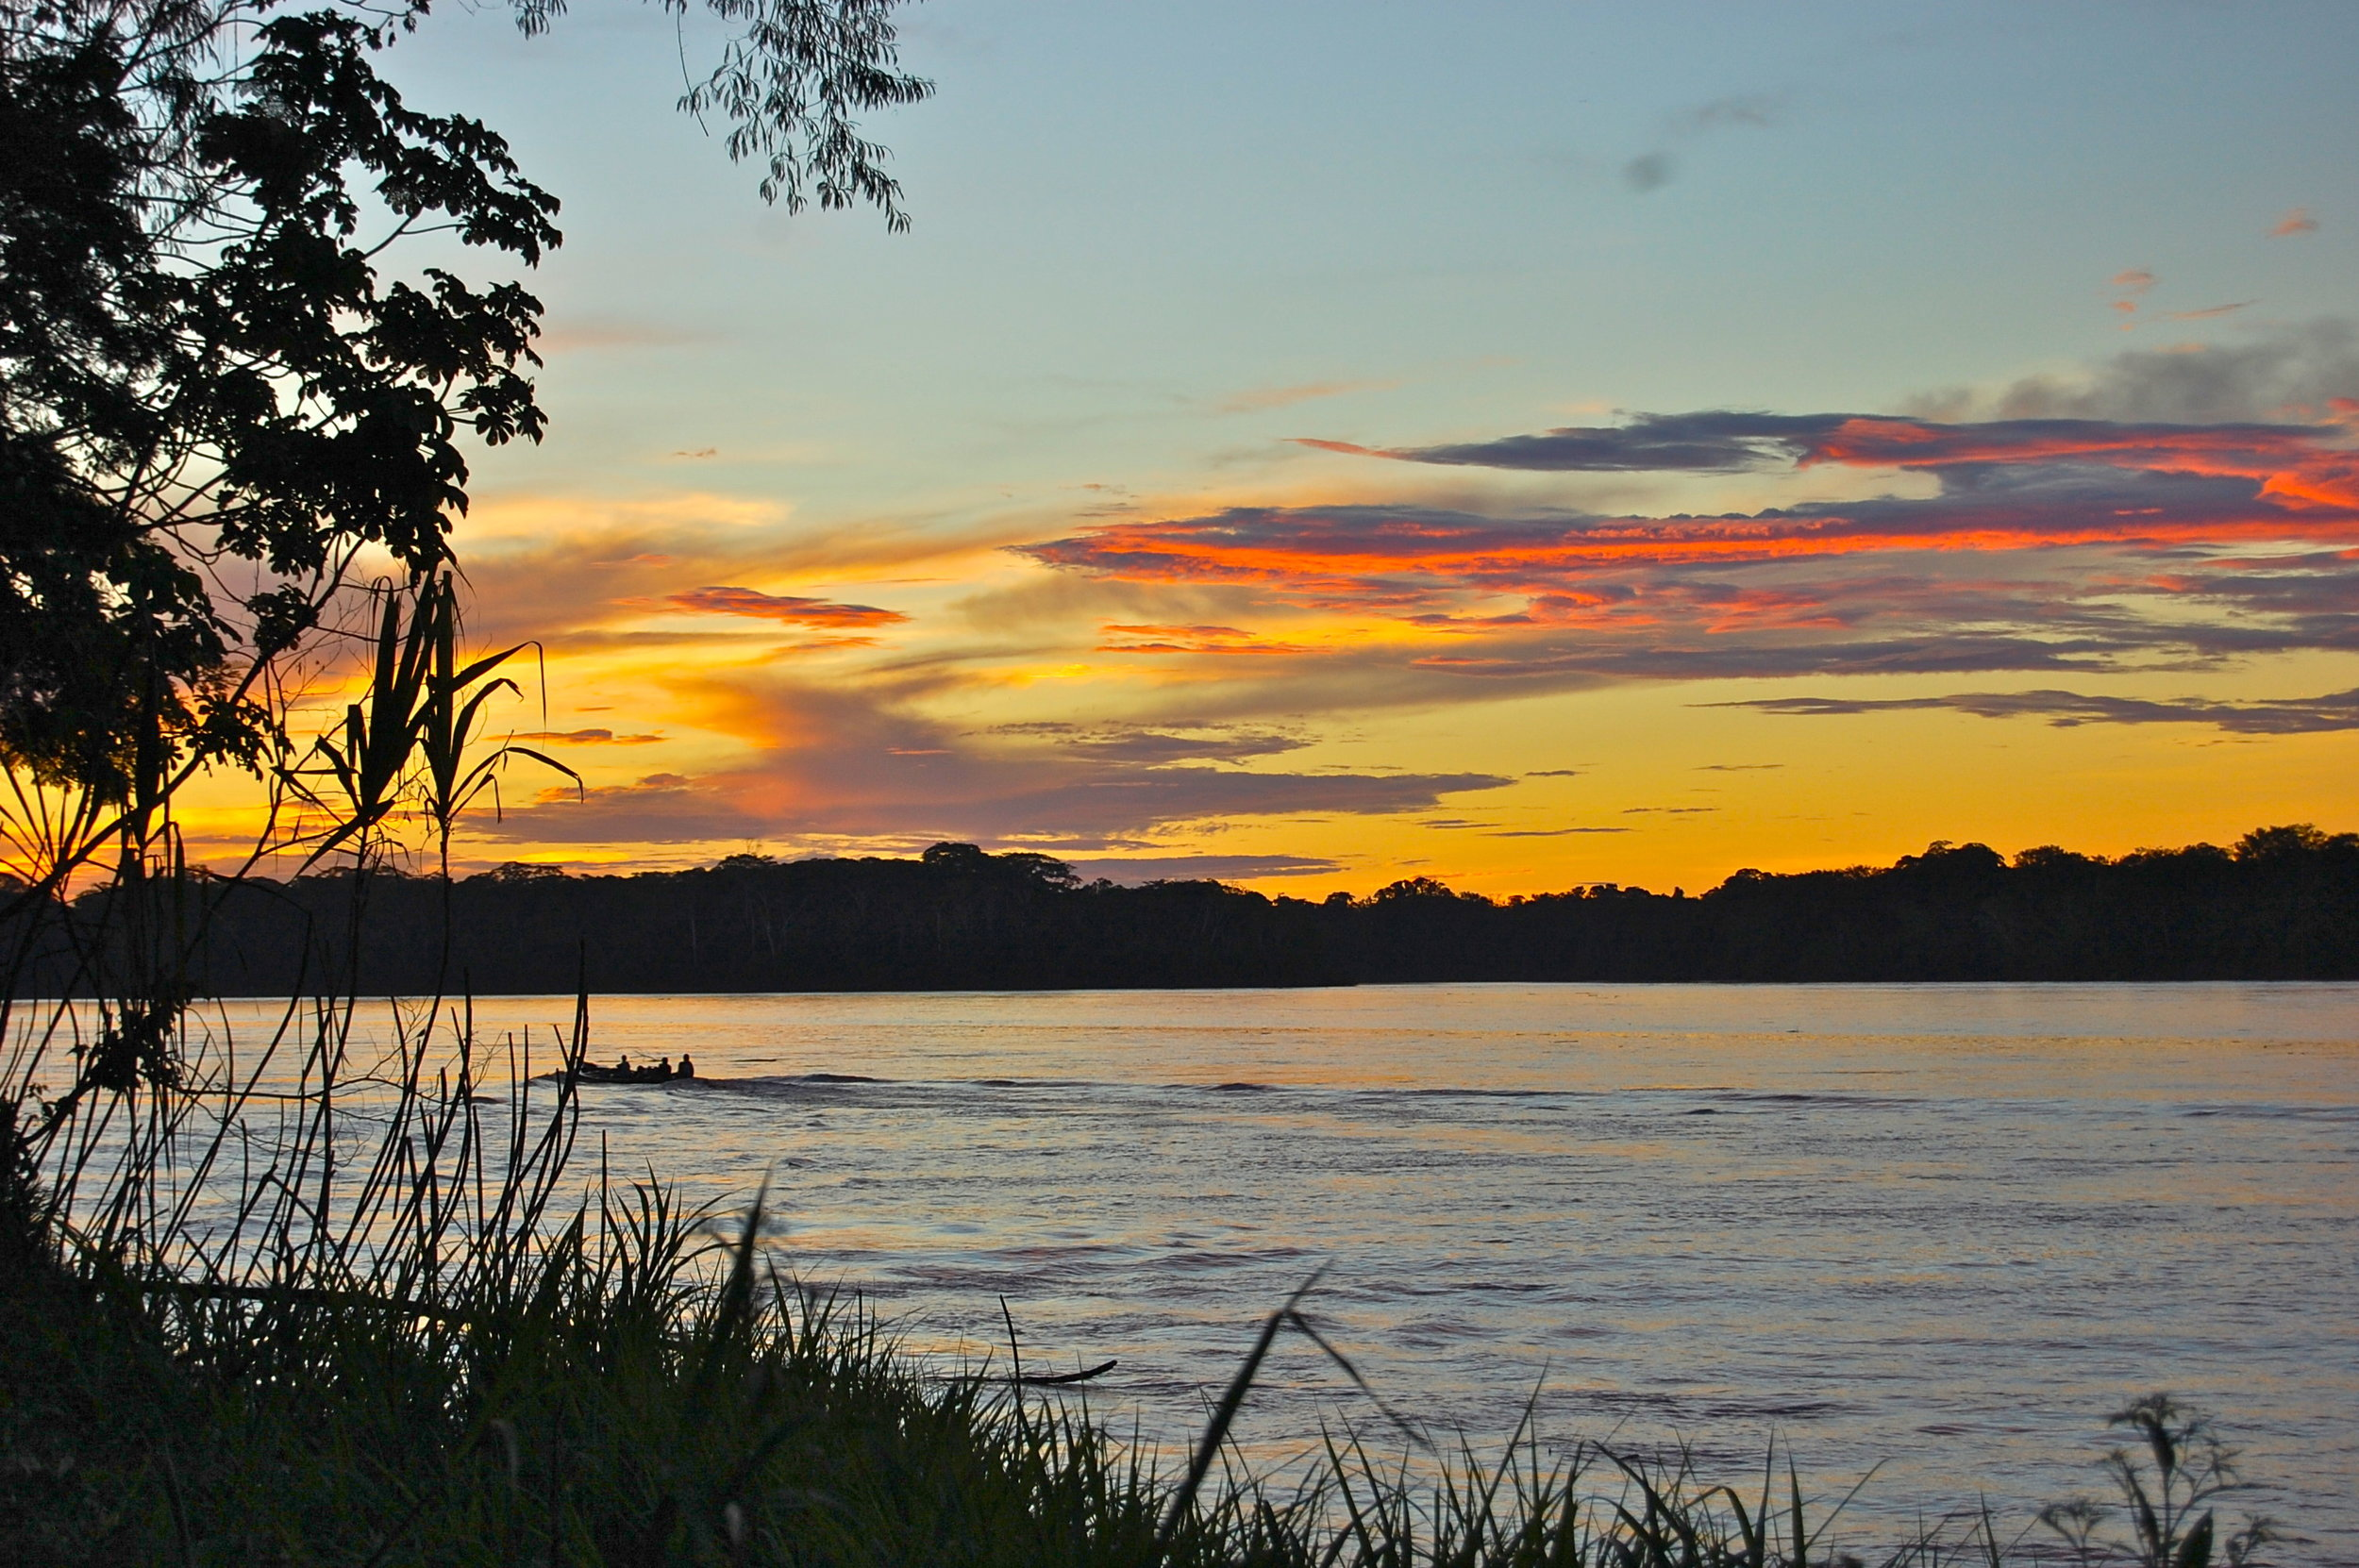 Sunsets on the Amazon River